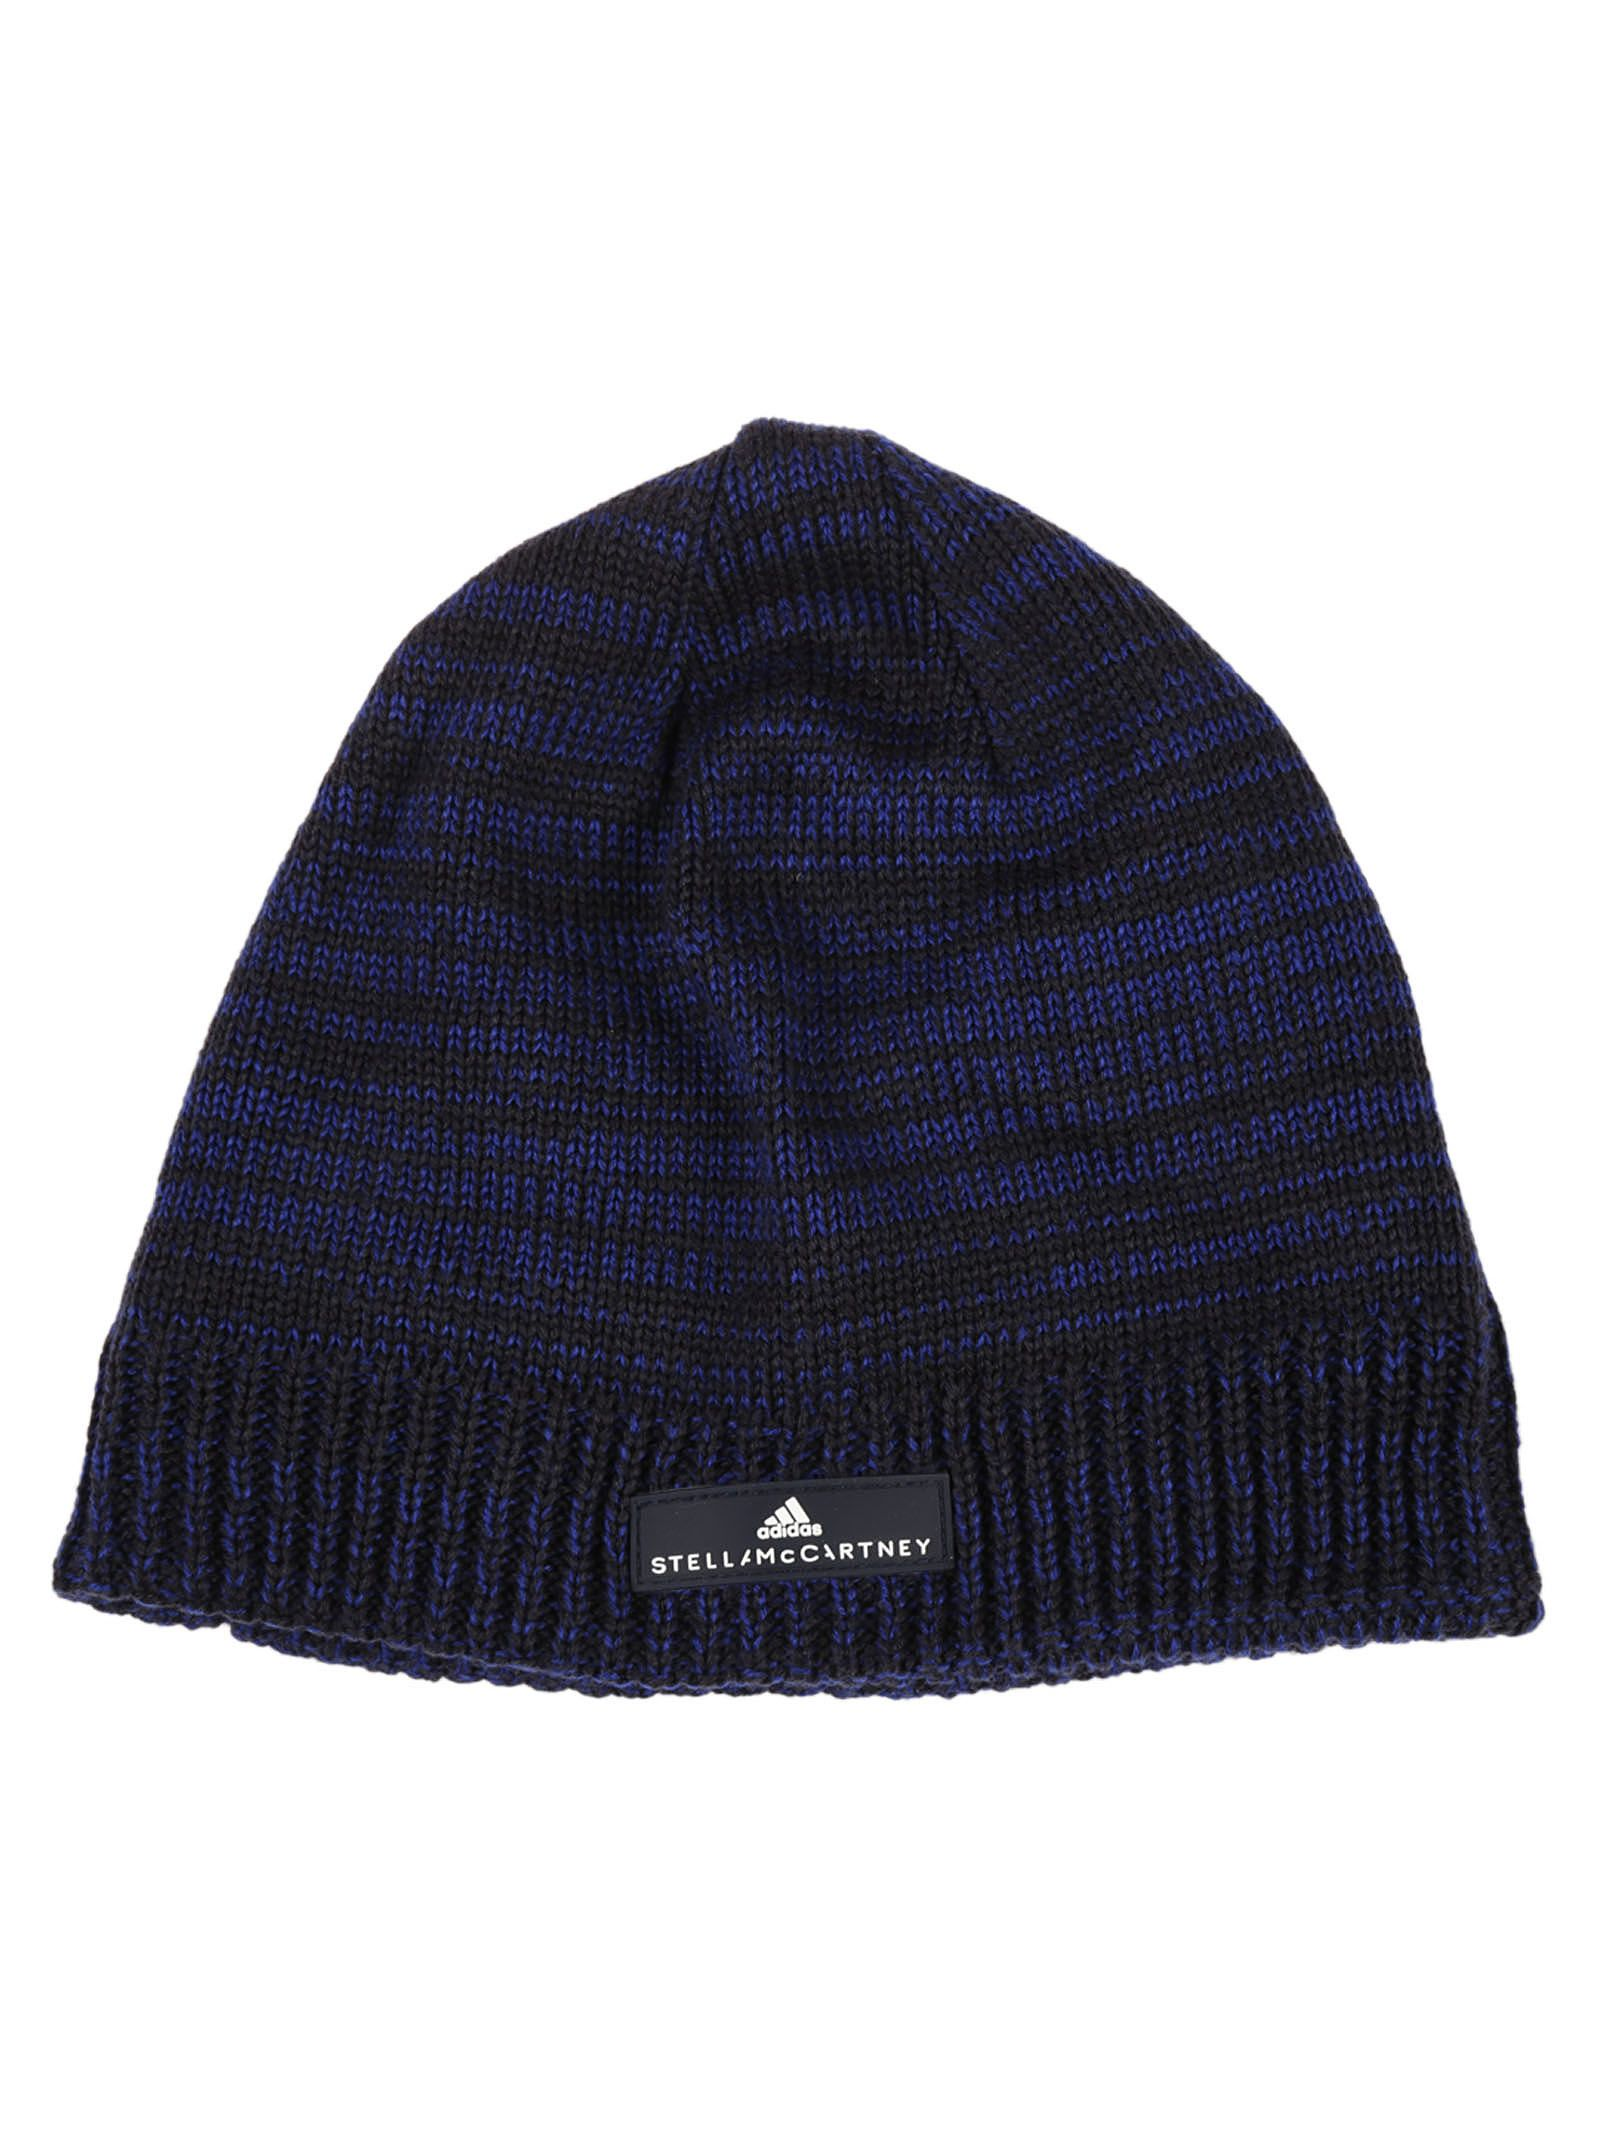 86b2af9a Adidas by Stella McCartney Adidas by Stella McCartney Knitted Beanie ...